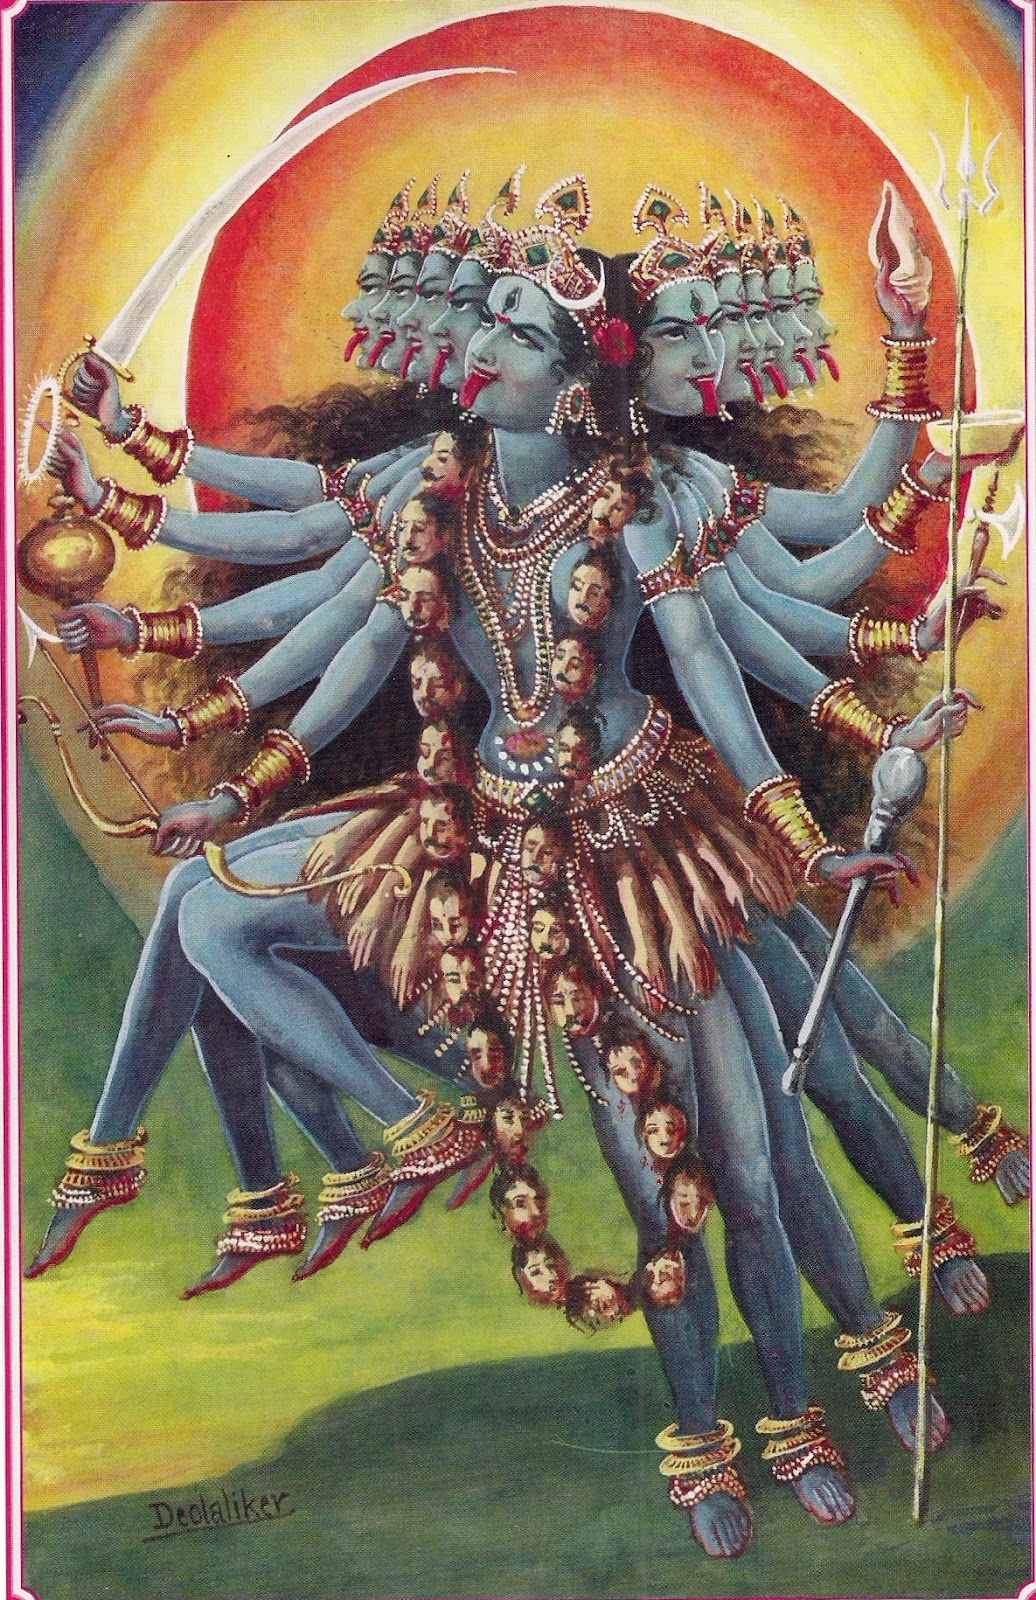 an analysis of kali a hindu primal mother goddess Kali is the hindu goddess (or devi) of death, time, and doomsday and is often associated with sexuality and violence but is also considered a strong mother-figure.